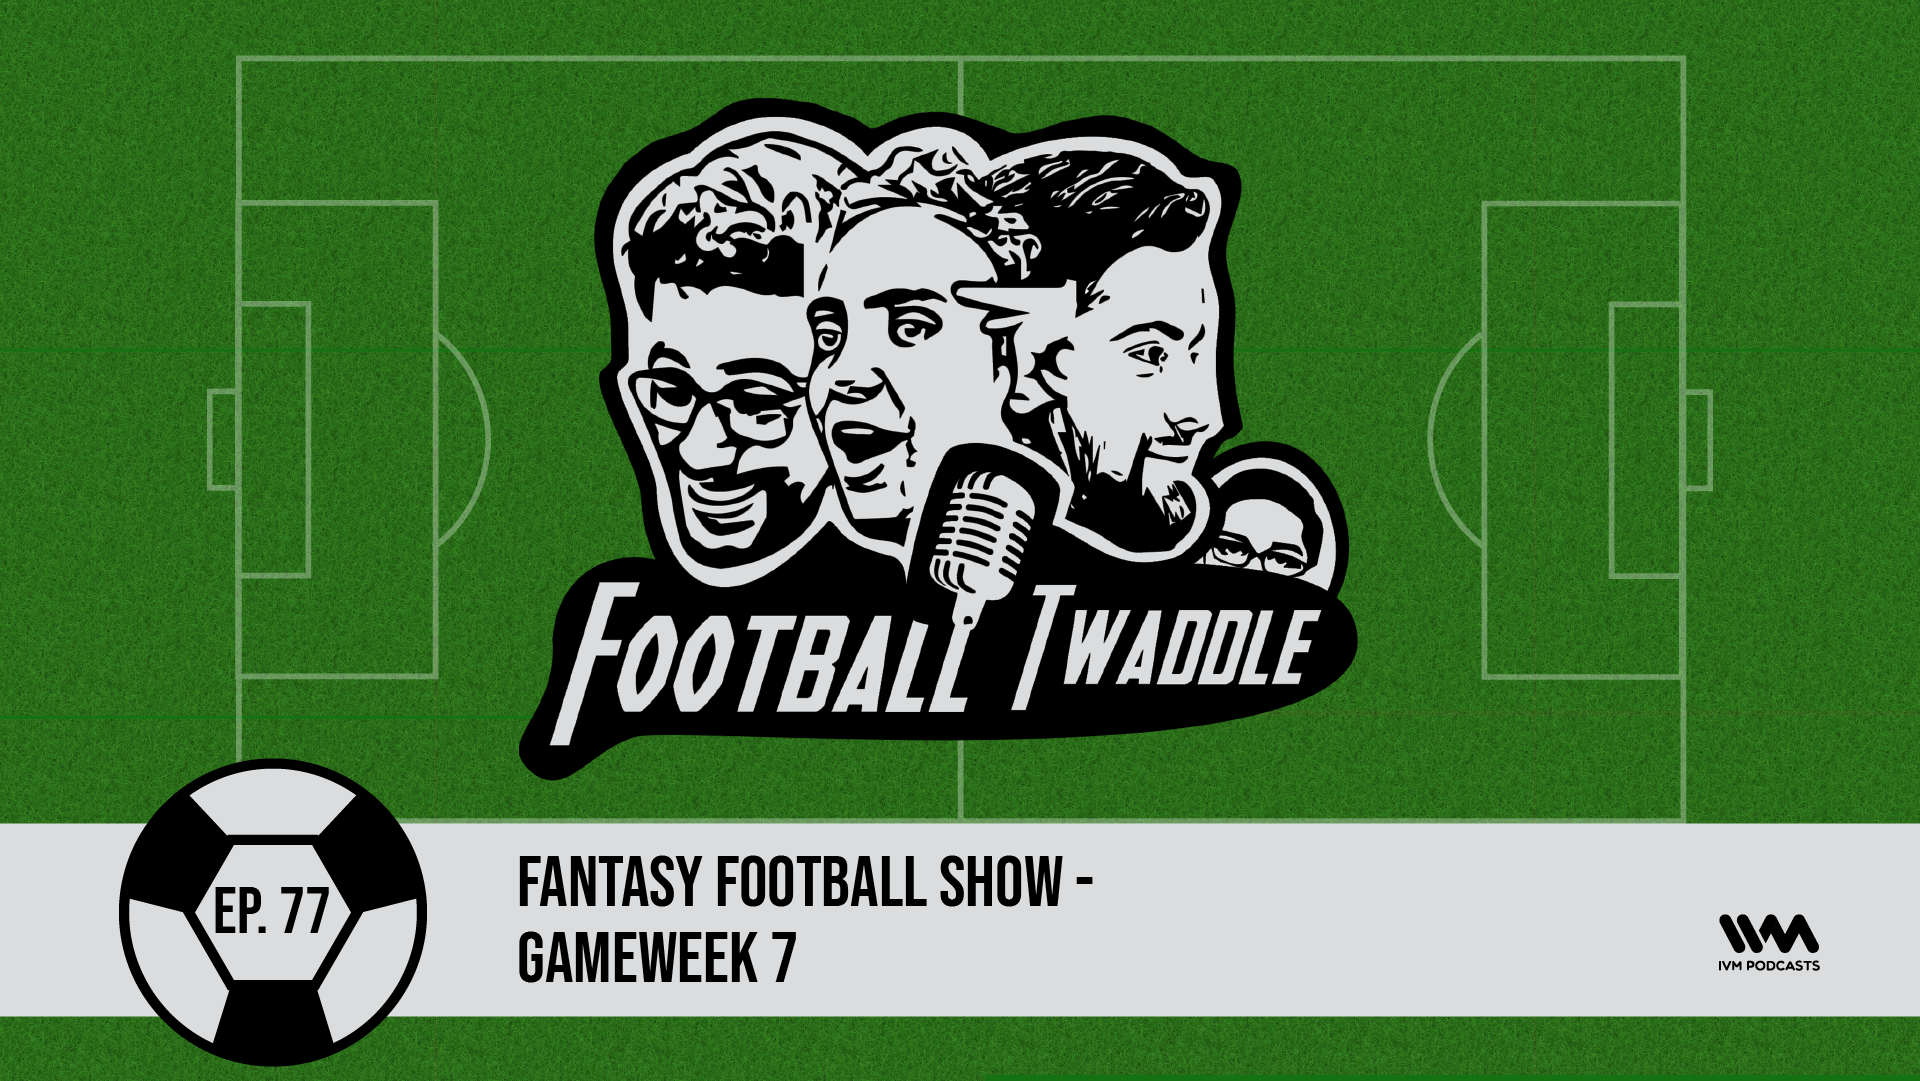 FootballTwaddleEpisode77.png